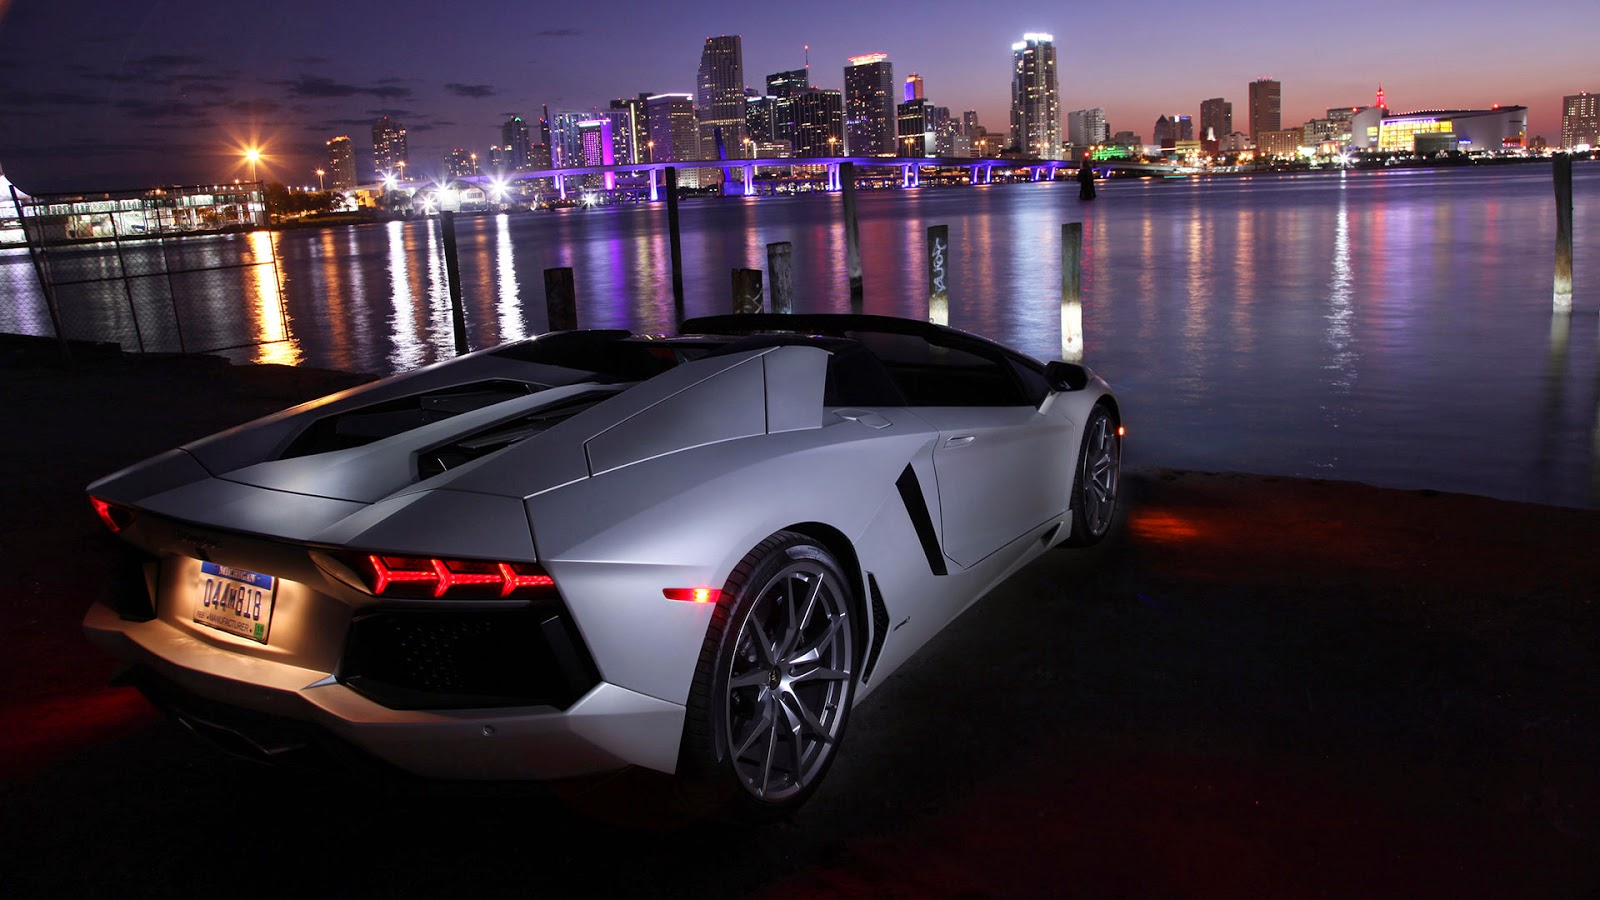 lamborghini aventador lp700-4 roadster 2013 hd car wallpaper ! car